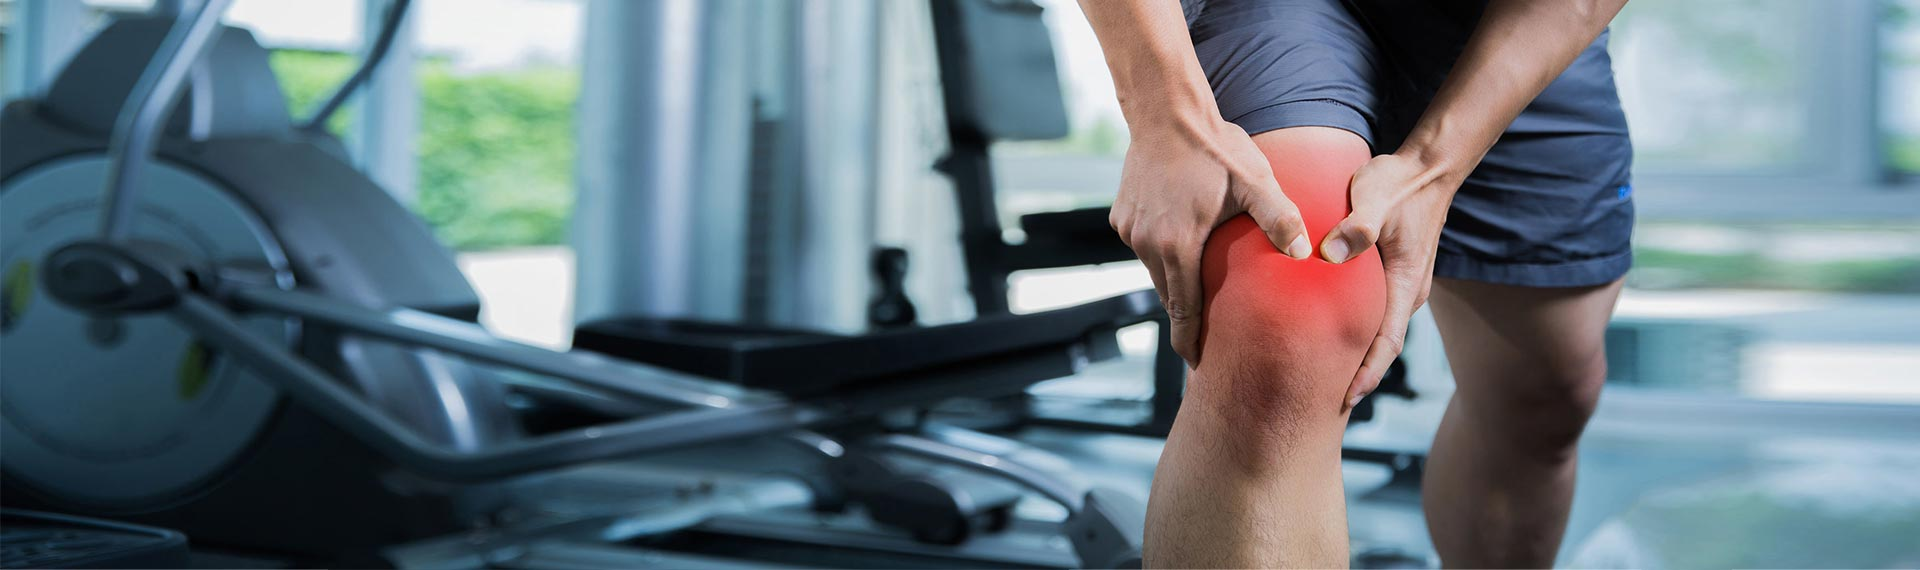 Non-Invasive Knee Arthroscopy Surgery | NOSA Orthopedics, Naples, FL